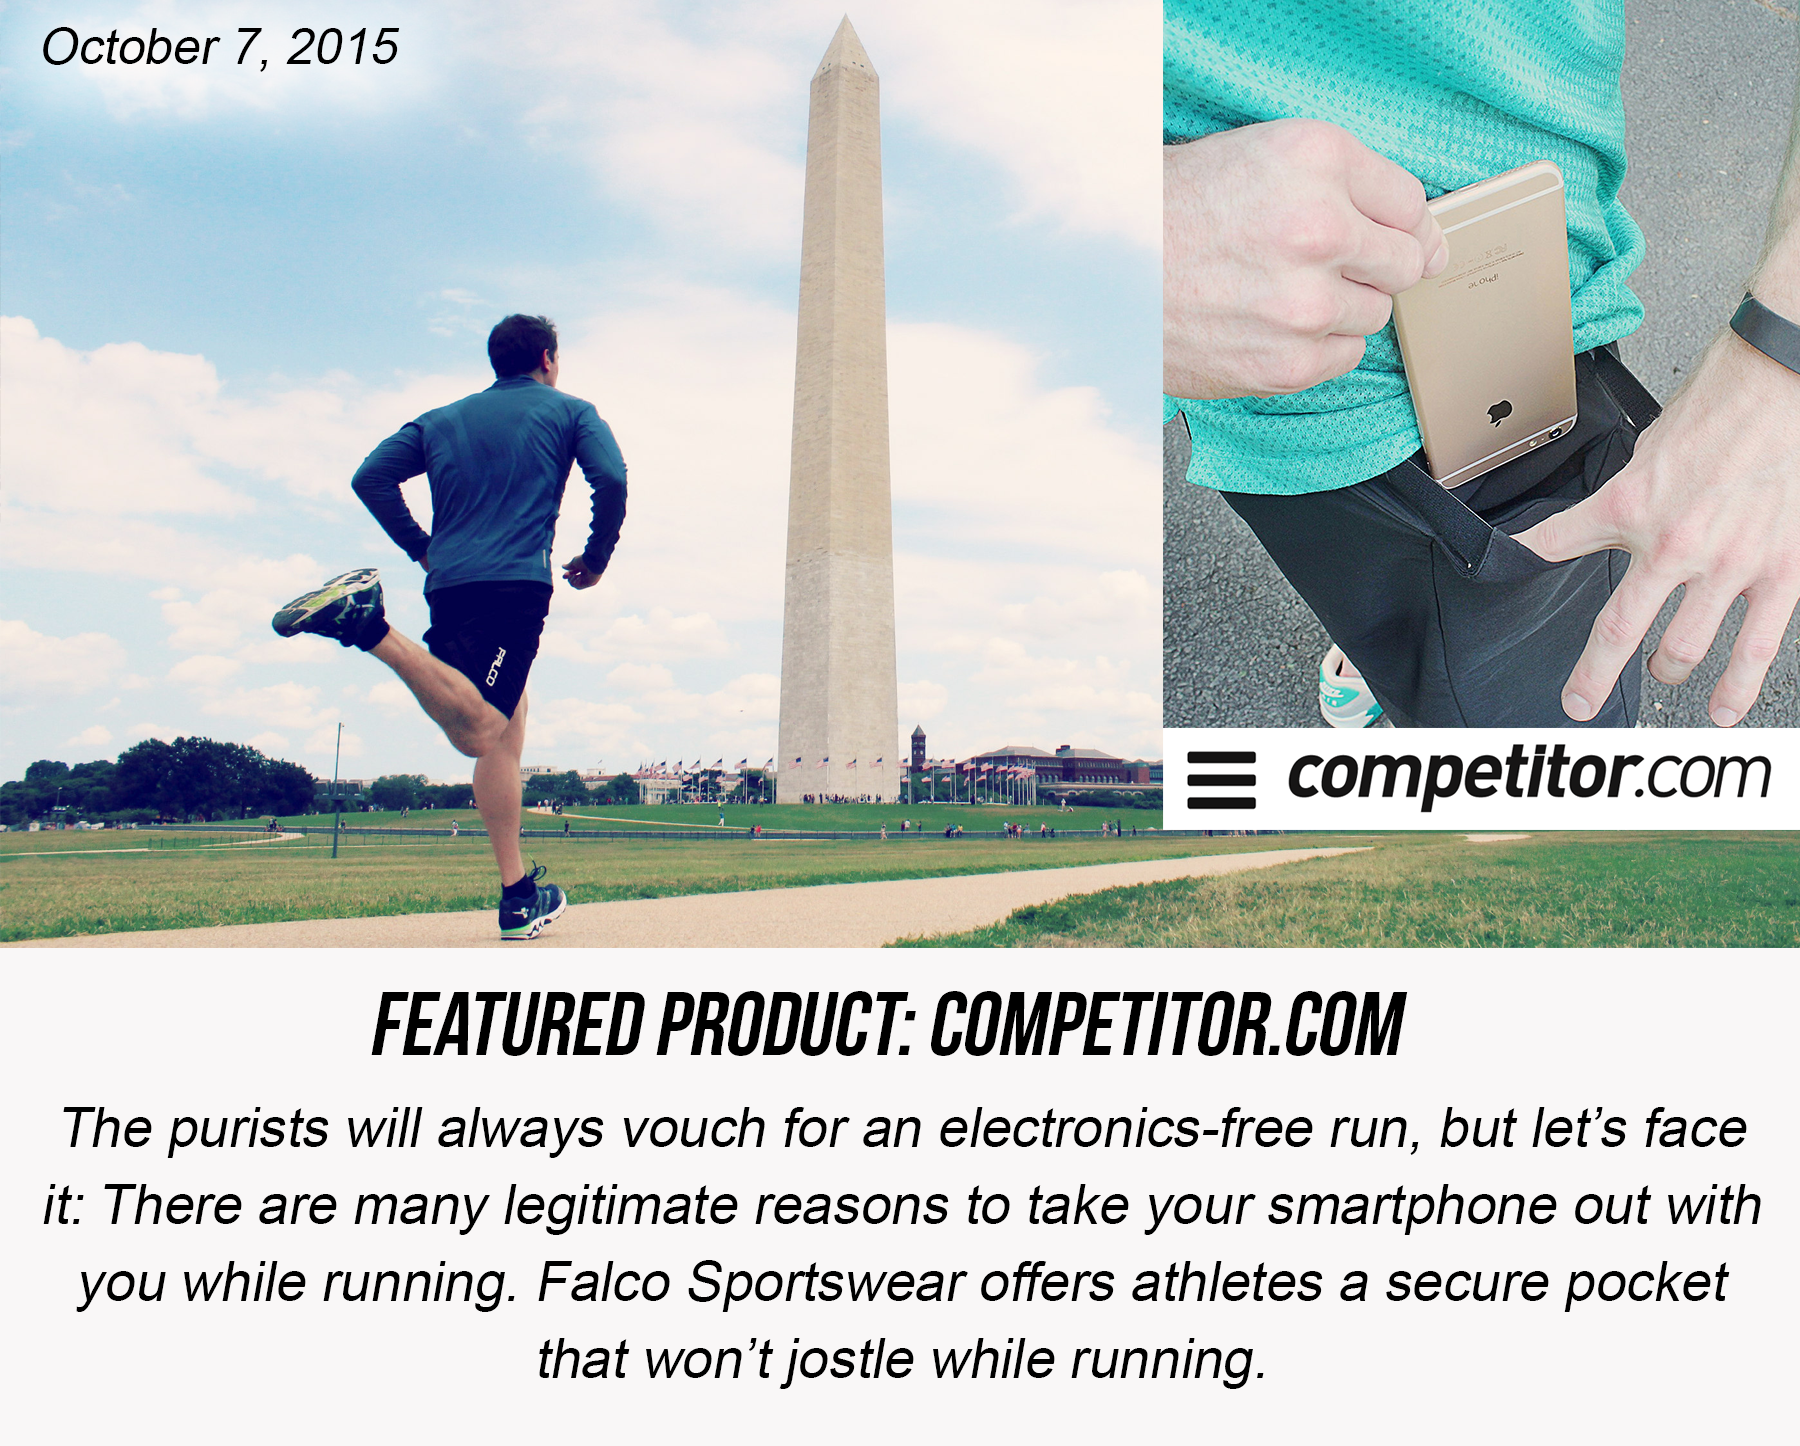 Competitor.com Falco Sportswear Review | Smartphone-Friendly Gear and Apparel